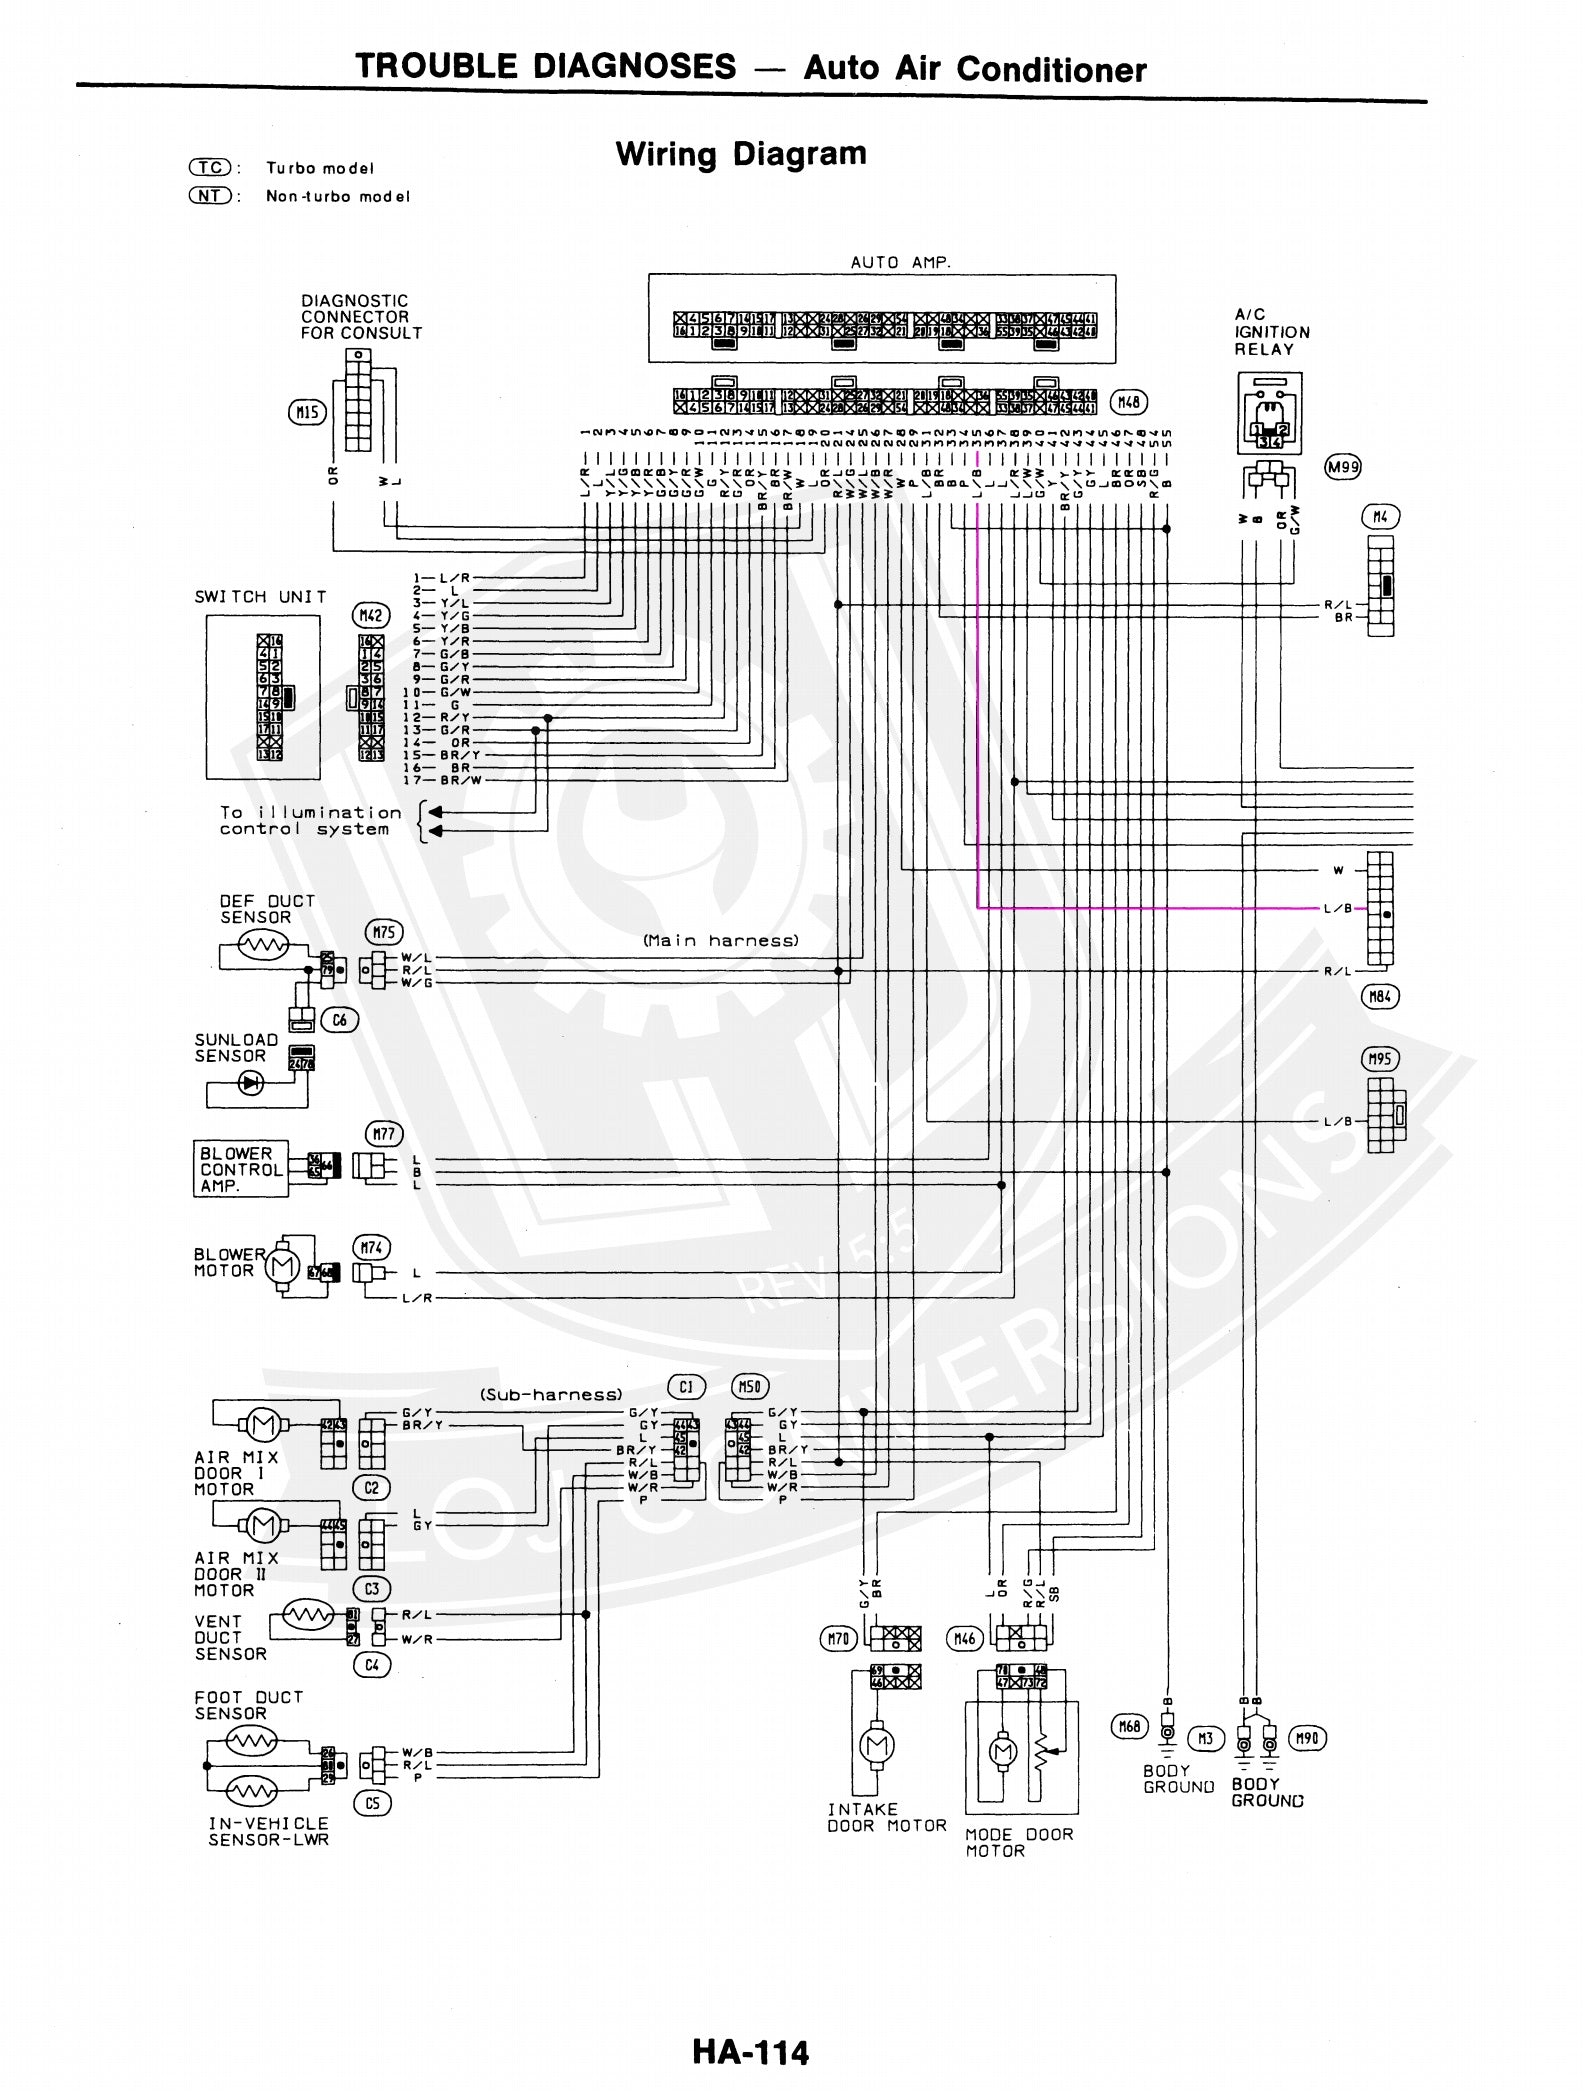 300ZX_AC_Wiring_Engine_Swap_03?13361147458220527412 wiring the ac in a 300zx engine conversion loj conversions Wiring Harness Diagram at fashall.co